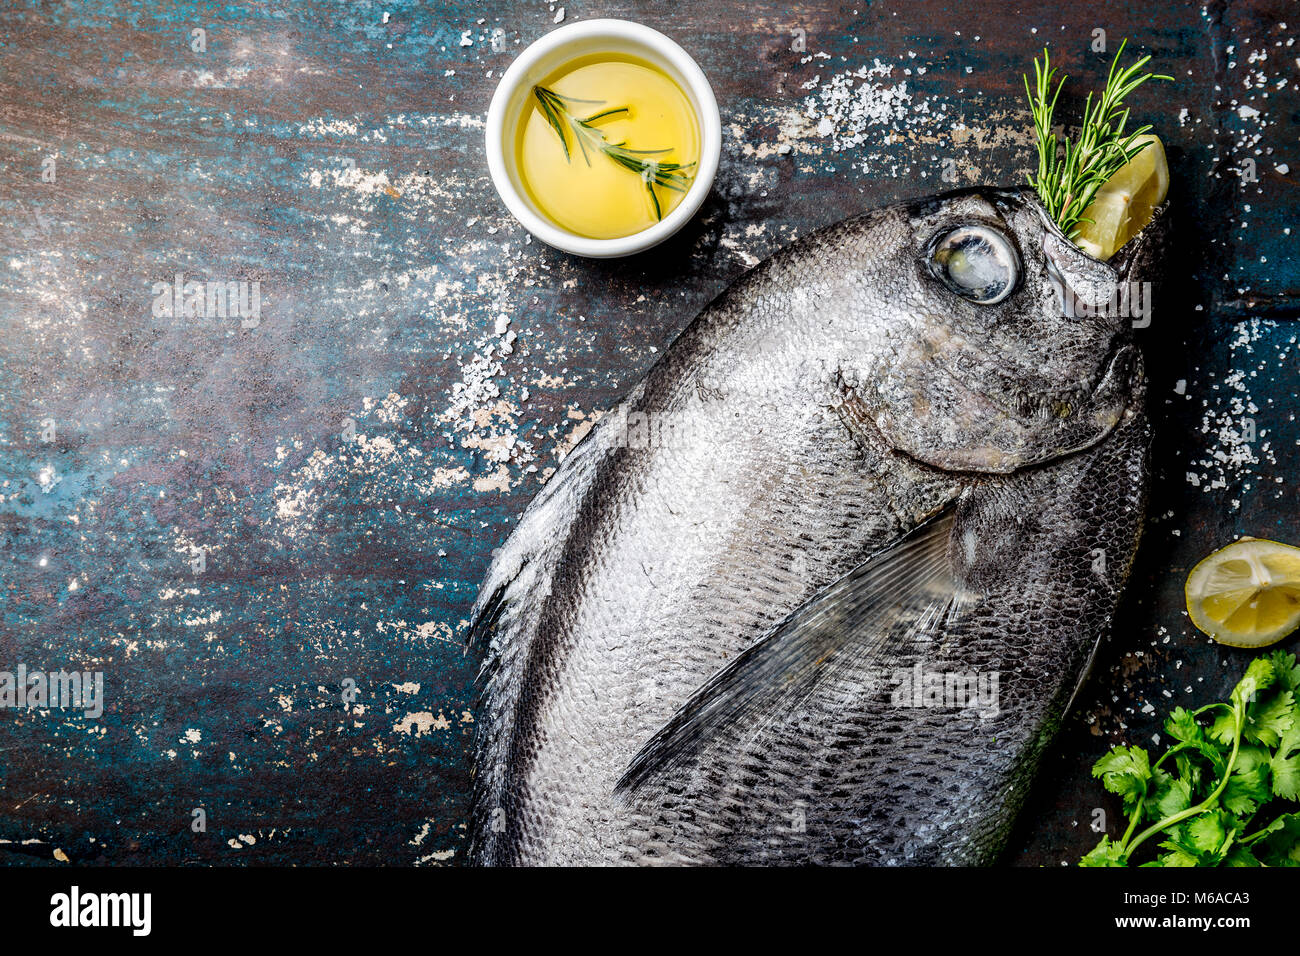 Food background with raw fresh fish reineta, herbs, olil and lemon. Top view. - Stock Image